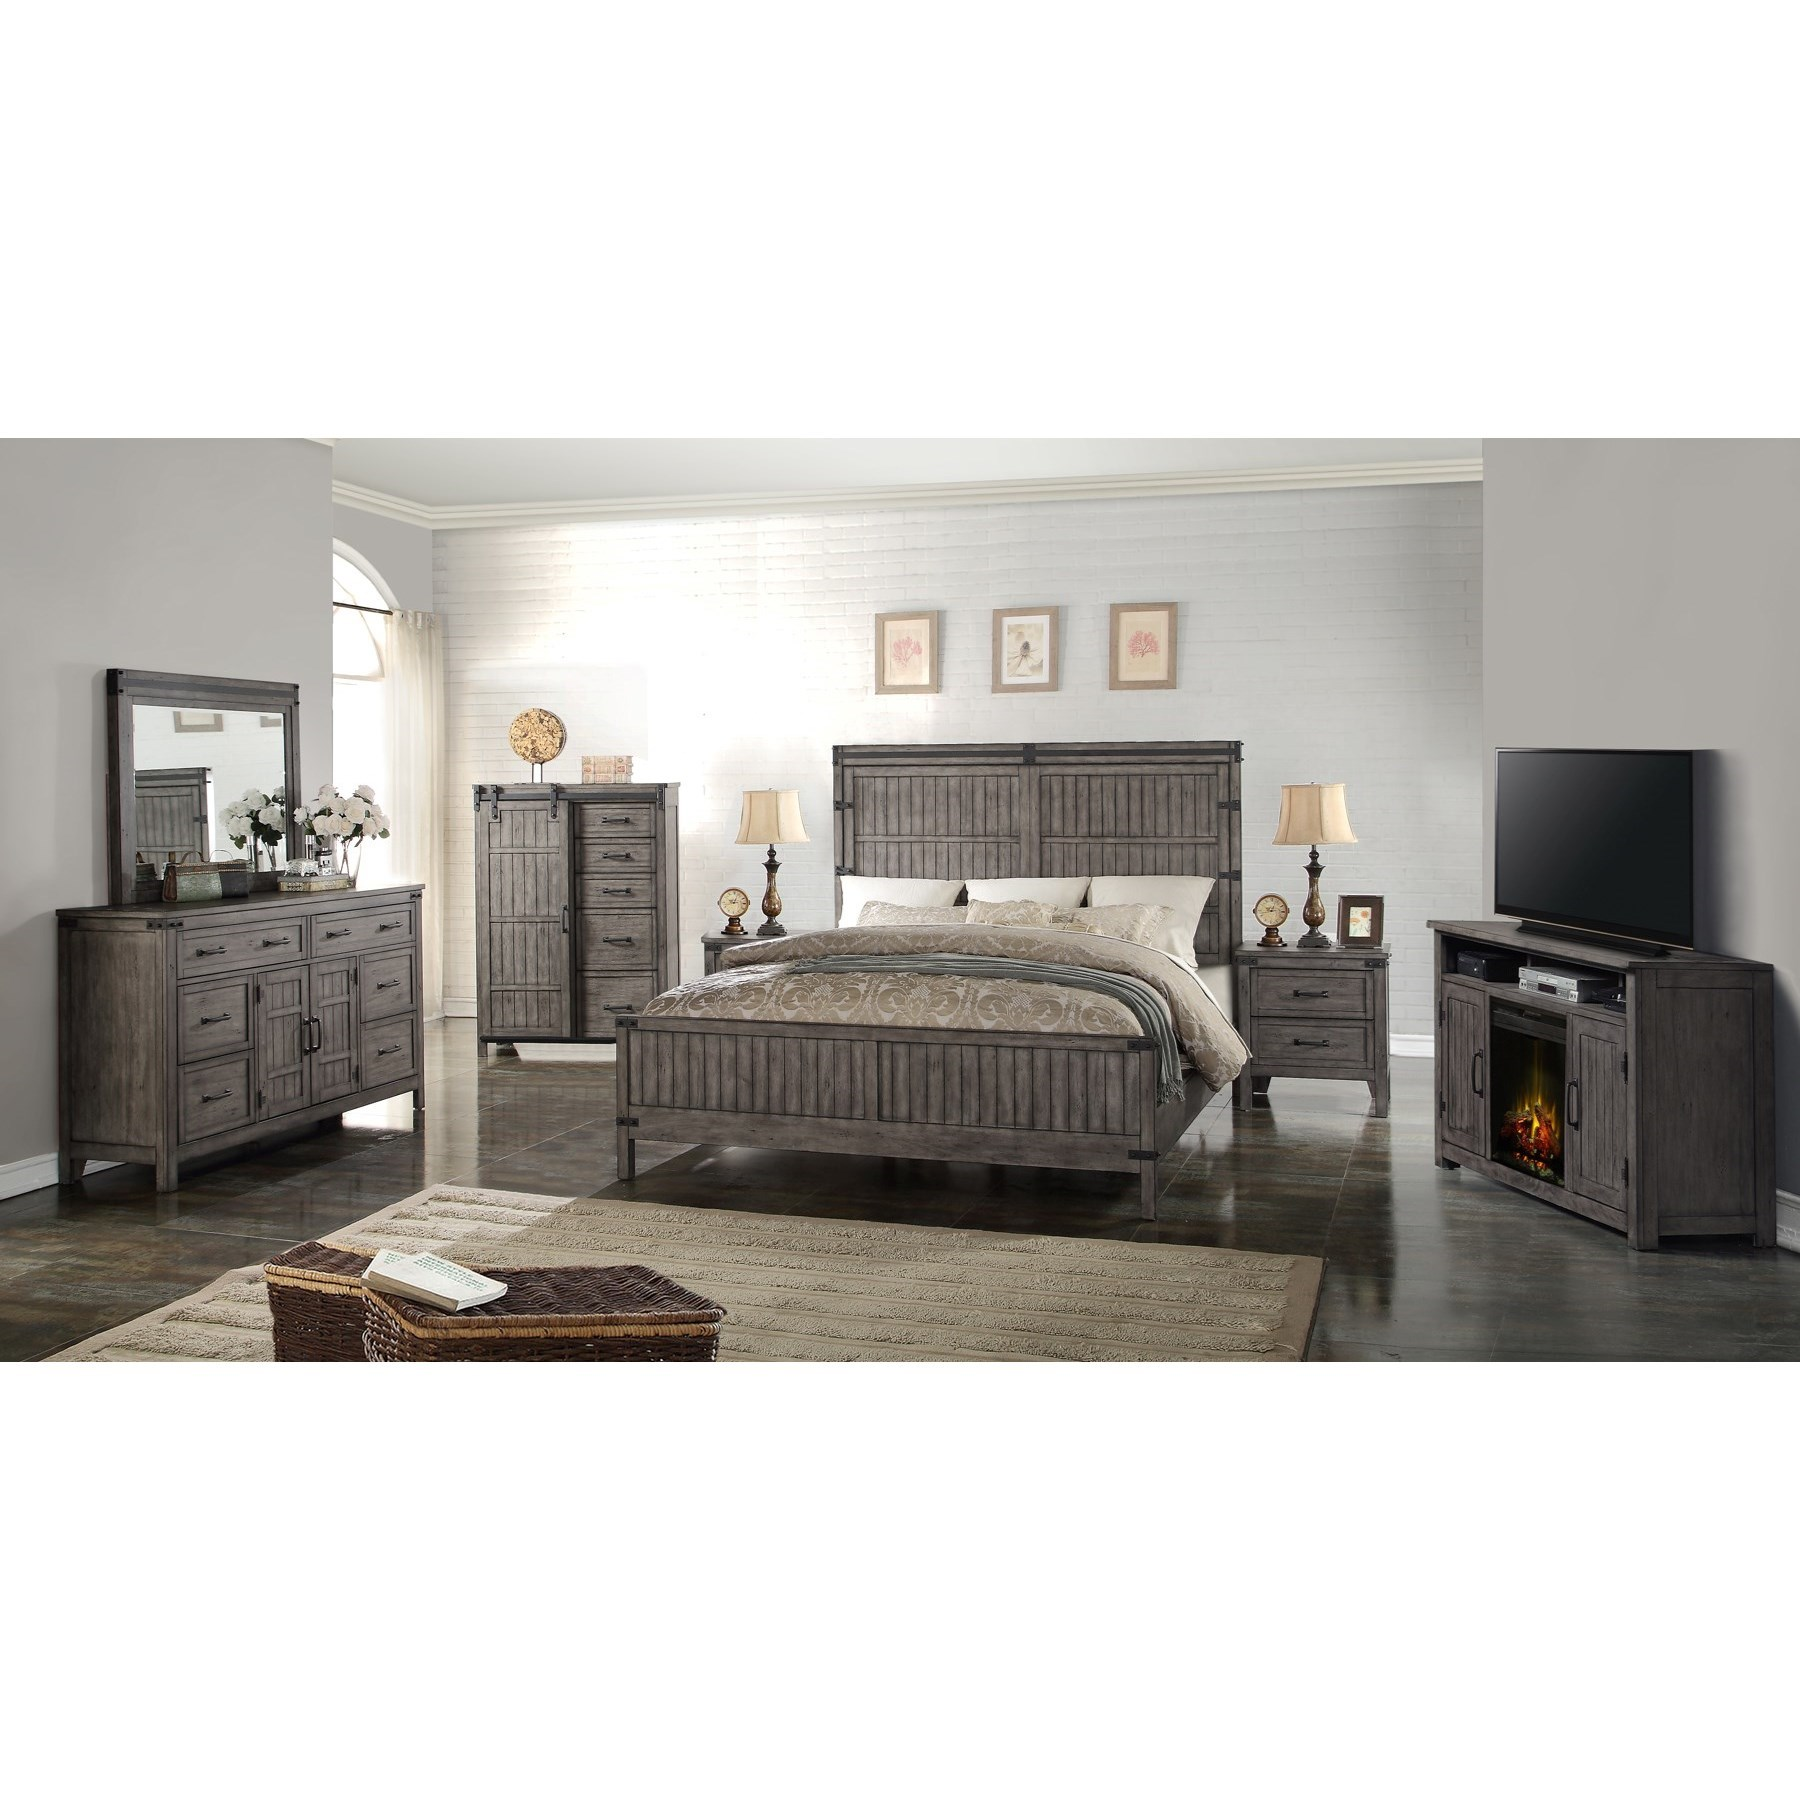 Legends furniture storehouse collection storehouse 6 for Storehouse furniture